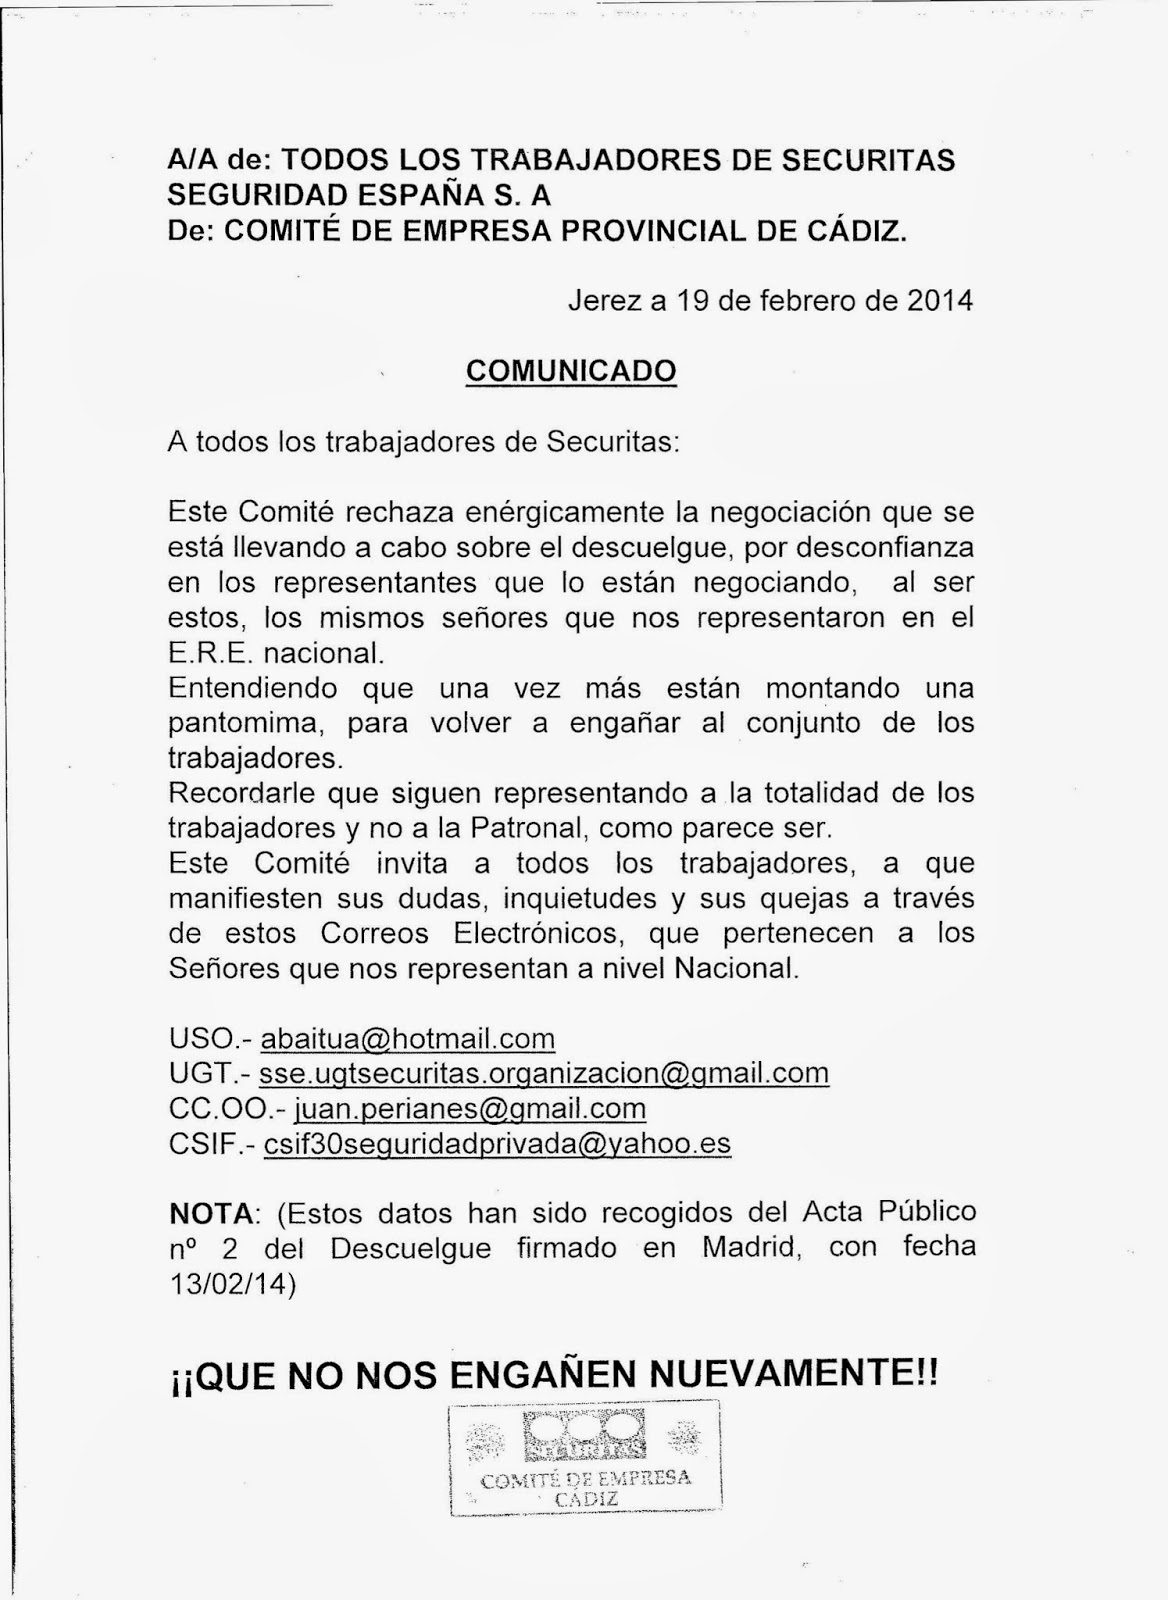 https://sites.google.com/site/sindicatoprofesionalspv/Comunicado%20Comite%20Securitas%20Cadiz%2019-02-14.pdf